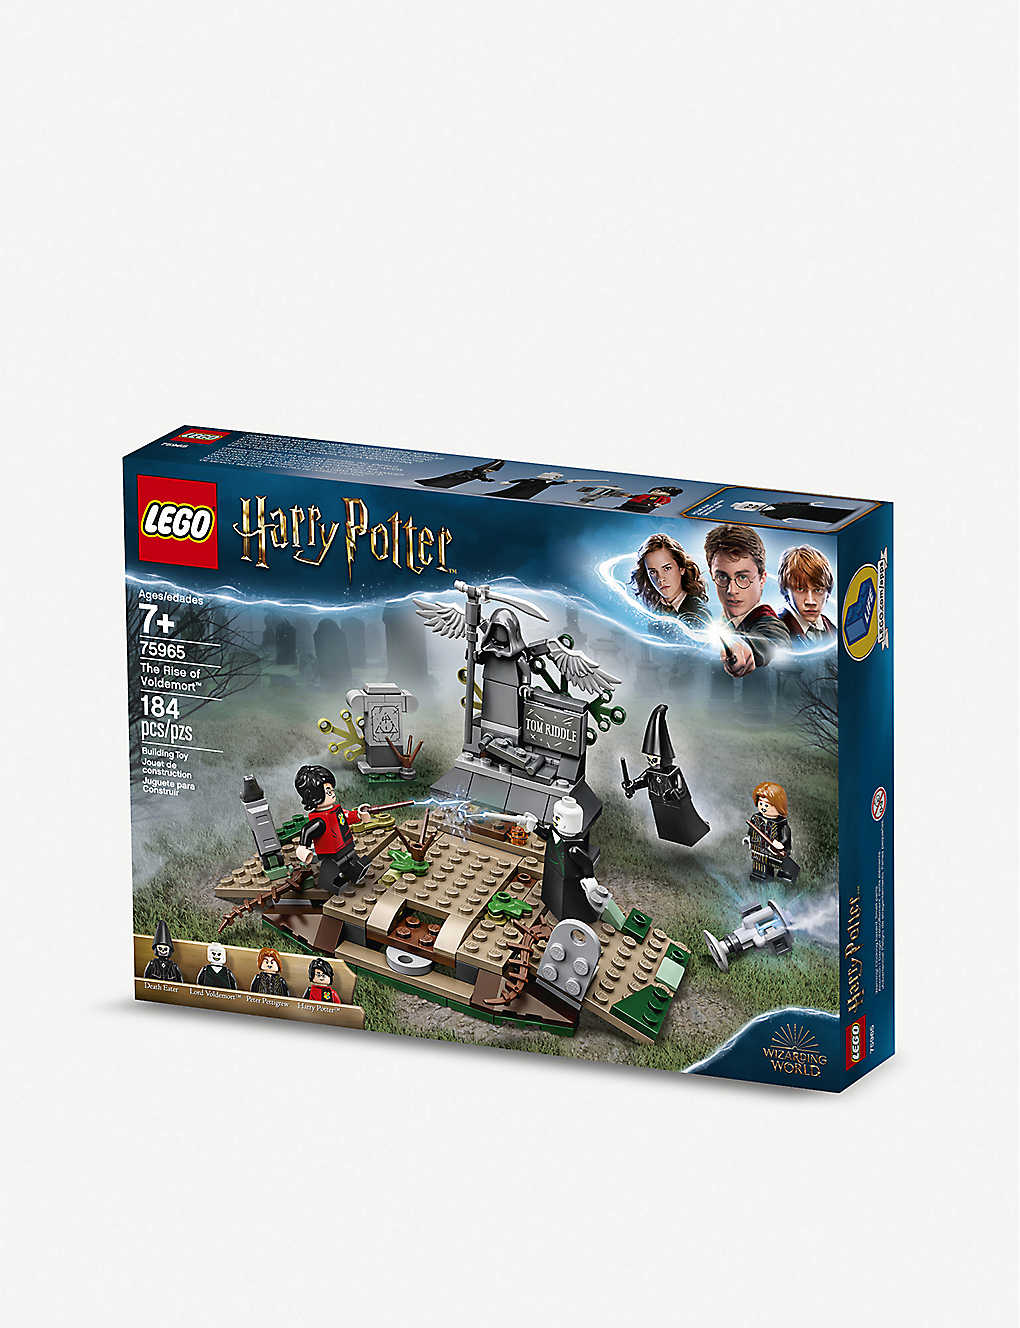 LEGO: LEGO Harry Potter The Rise of Voldemort